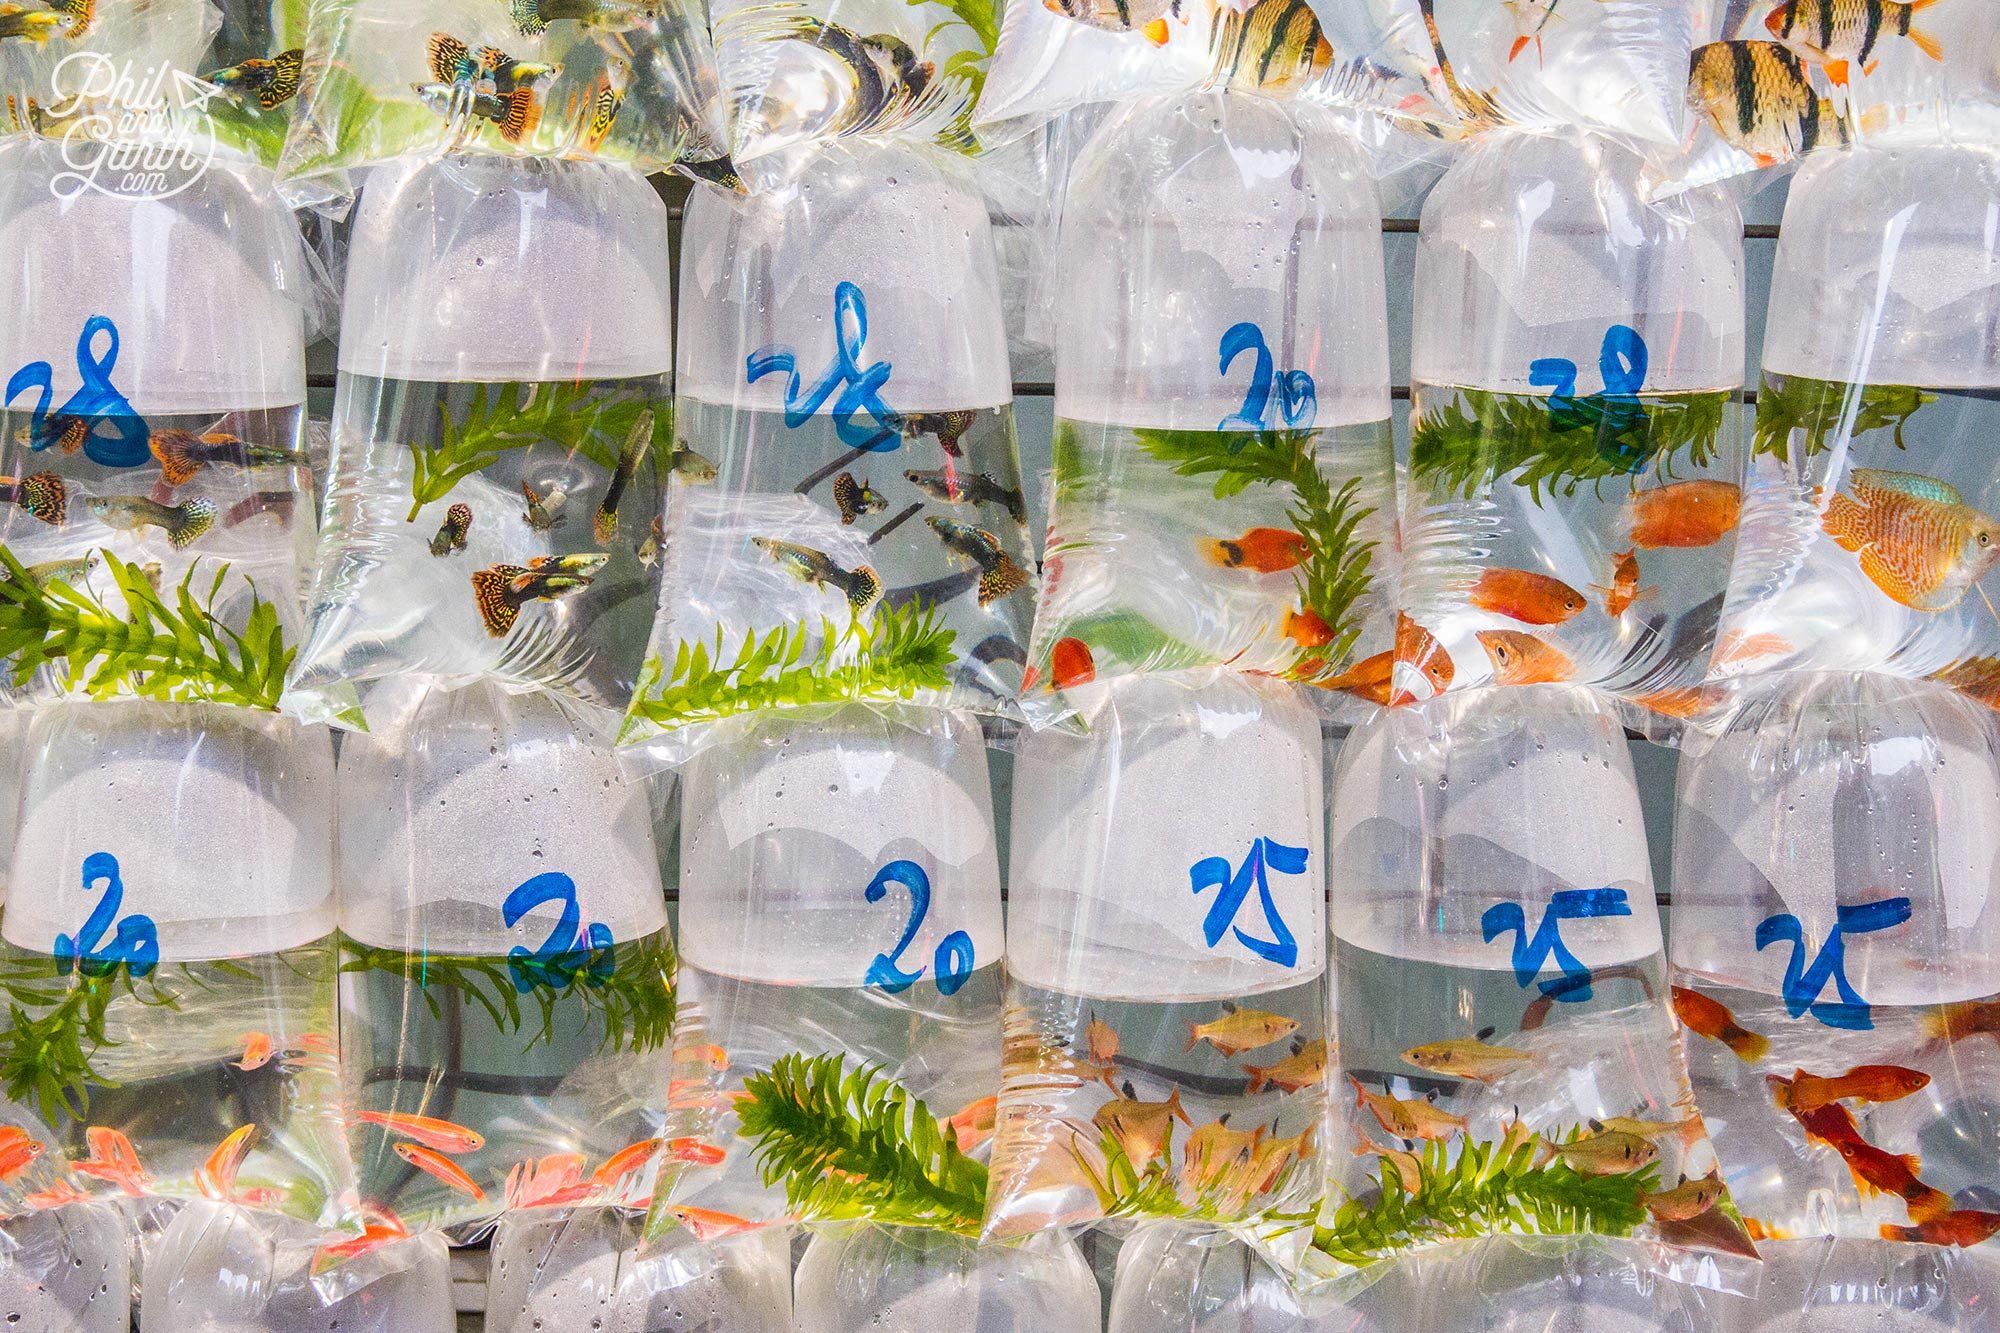 Bagged goldfish and tropical fish in Mong Kok